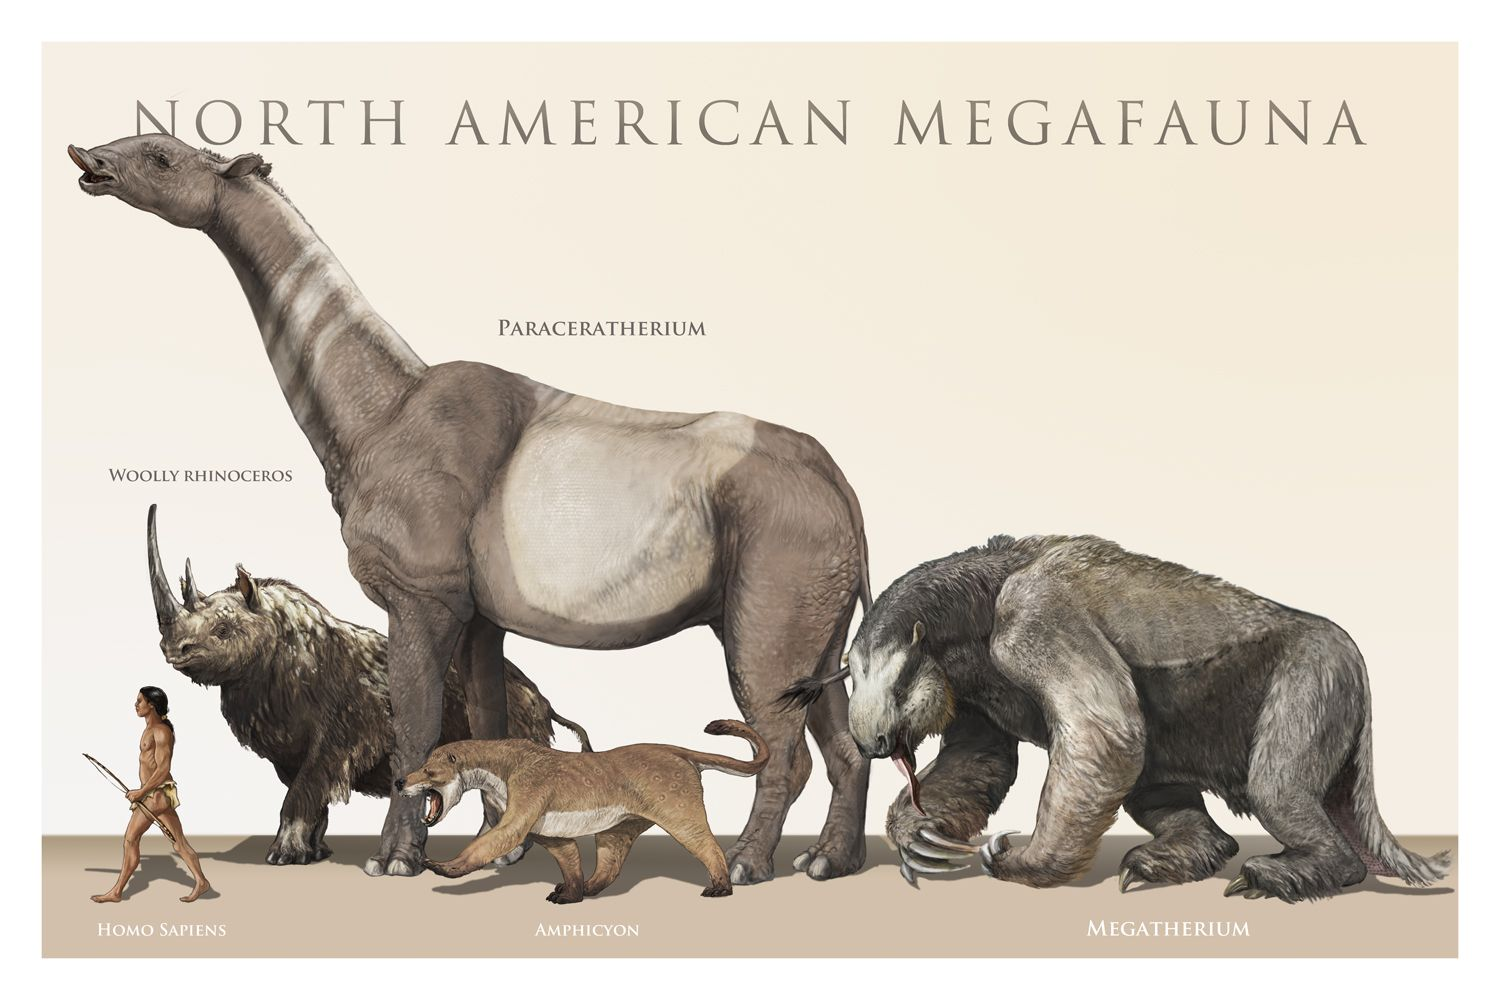 North American Megafauna The mistake with this picture